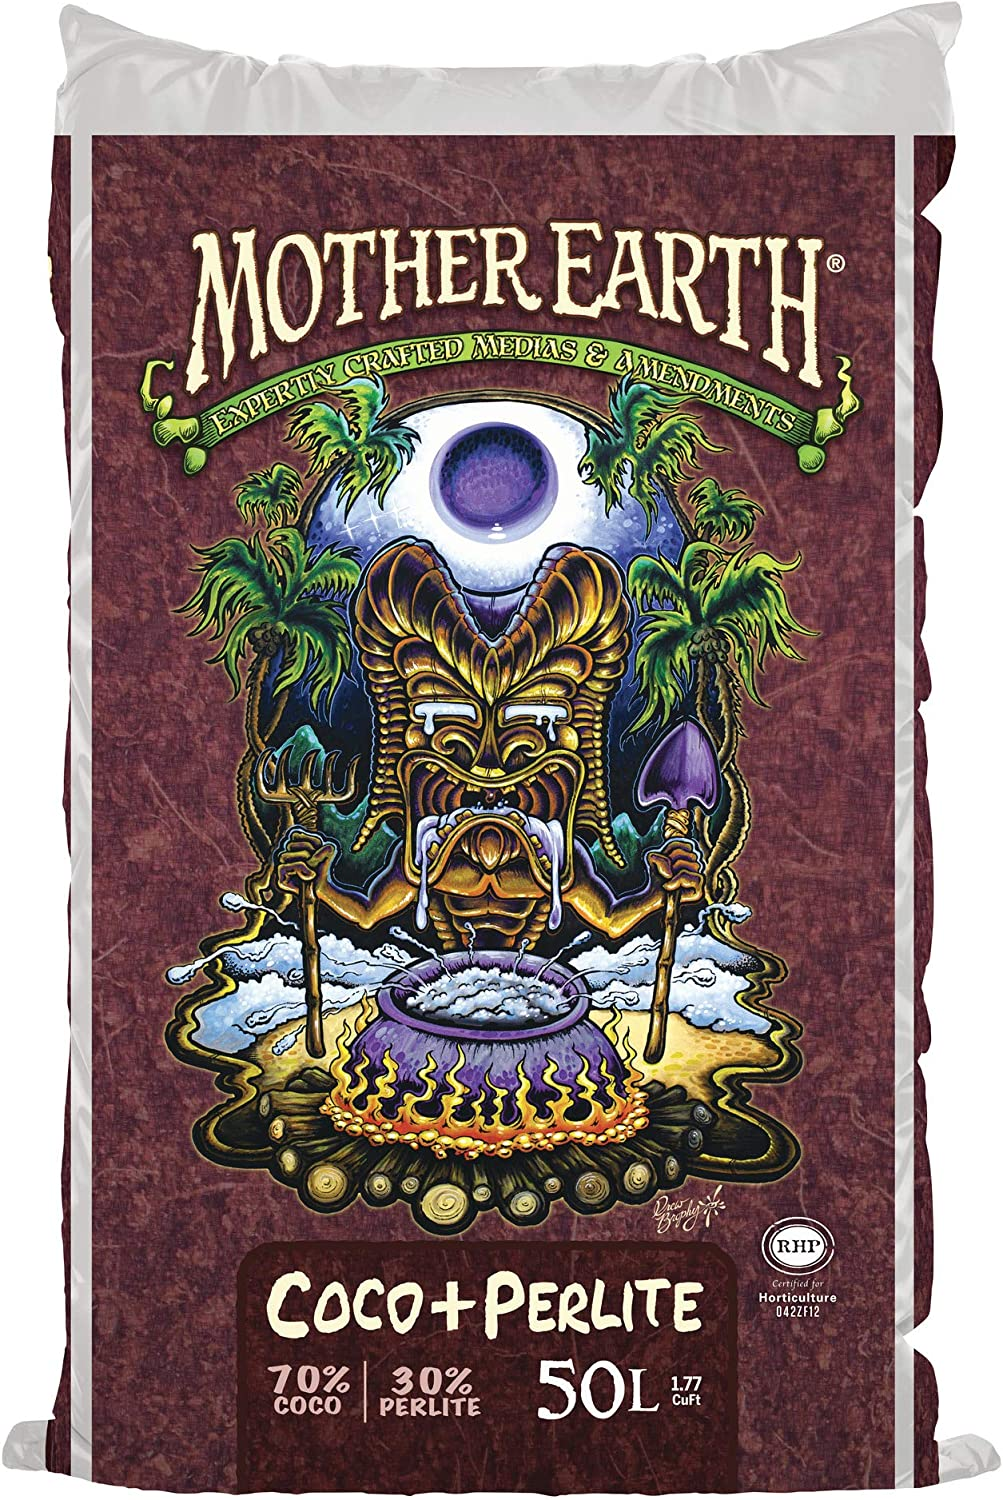 Mother Earth Coco Plus Perlite Raised Bed Soil Mix